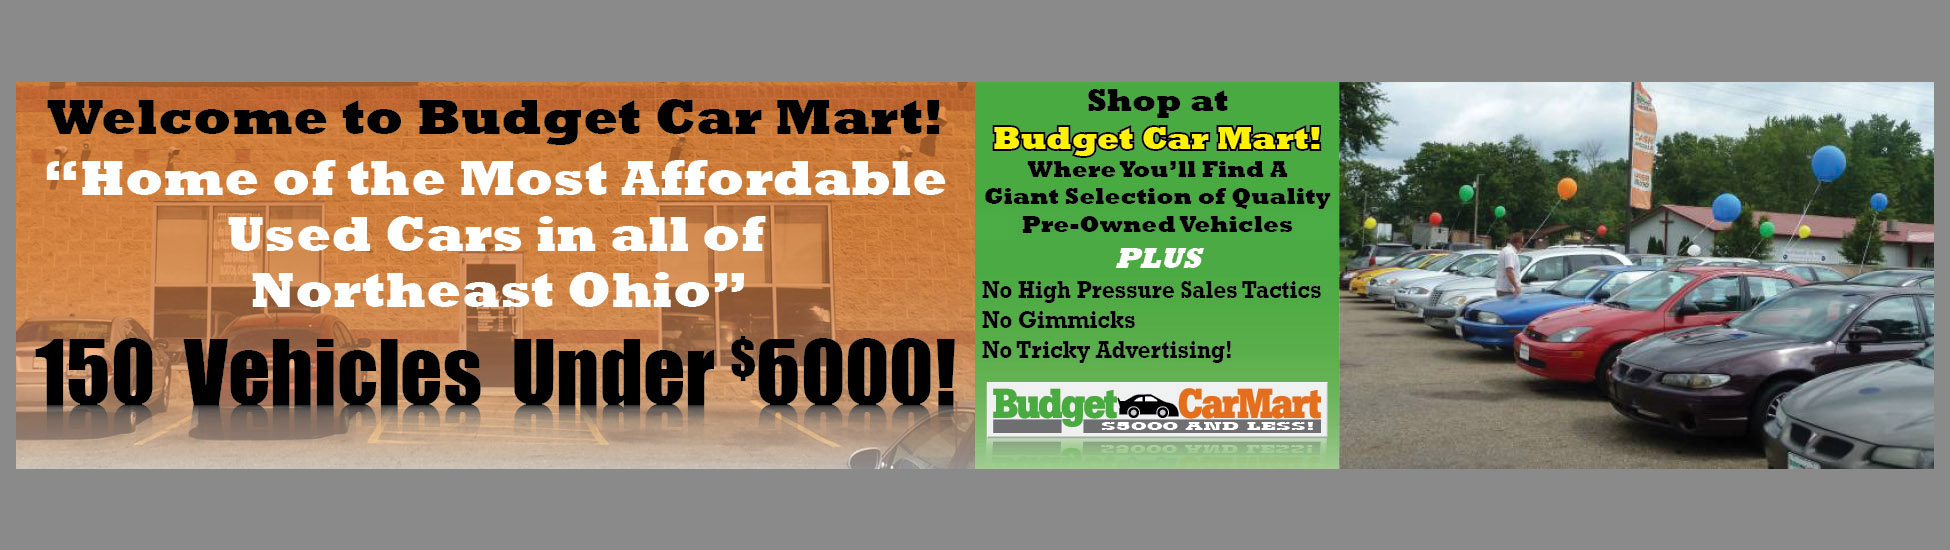 Used Cars For Sale Under 6000 >> Home Budget Car Mart Affordable Used Cars Ohio Pre